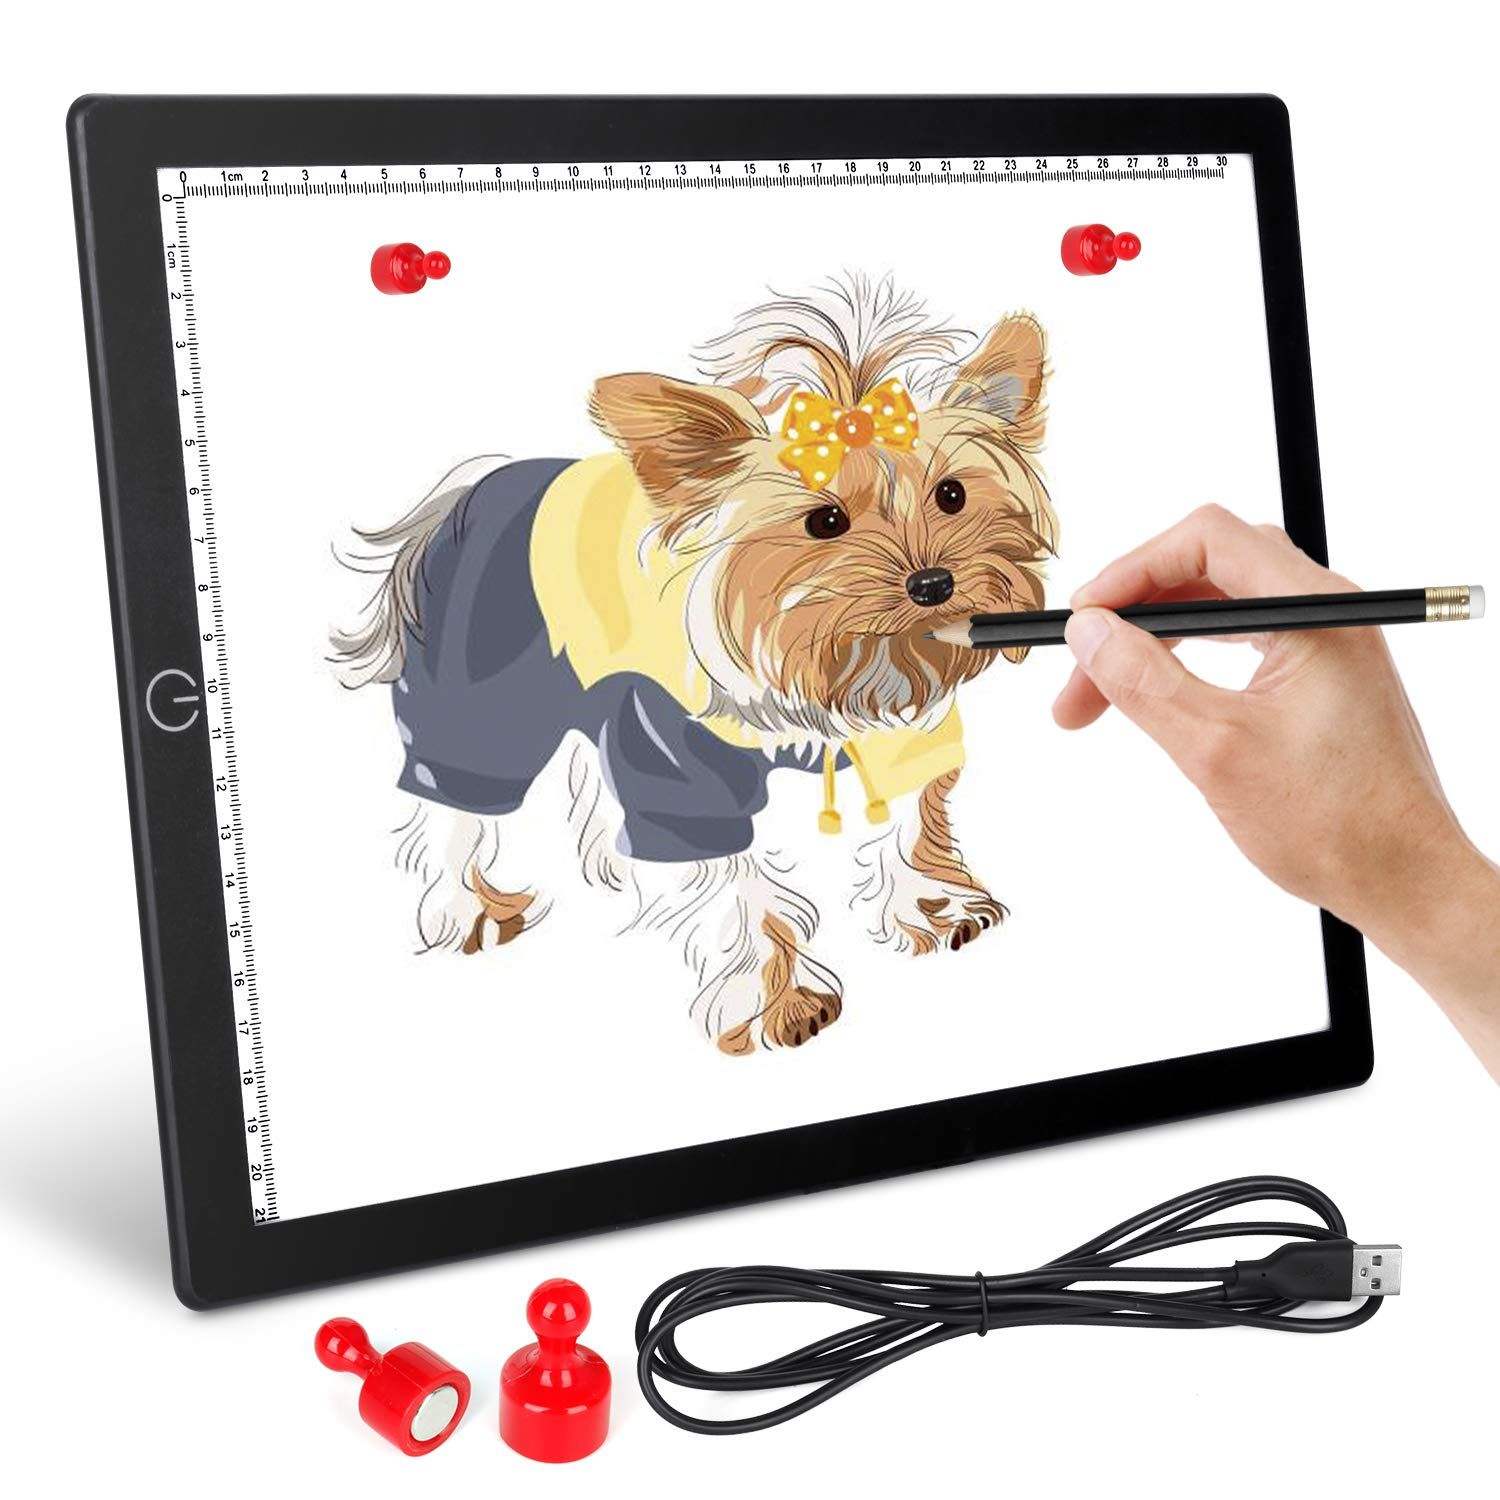 A4 LED Light Box Tracing Light Pad - Ultra-Thin Magnetic LED Tracing Light Pad with USB Powered for Artists Drawing DIY Diamond Painting Sketching Tattoo Animation Designing by Honesorn